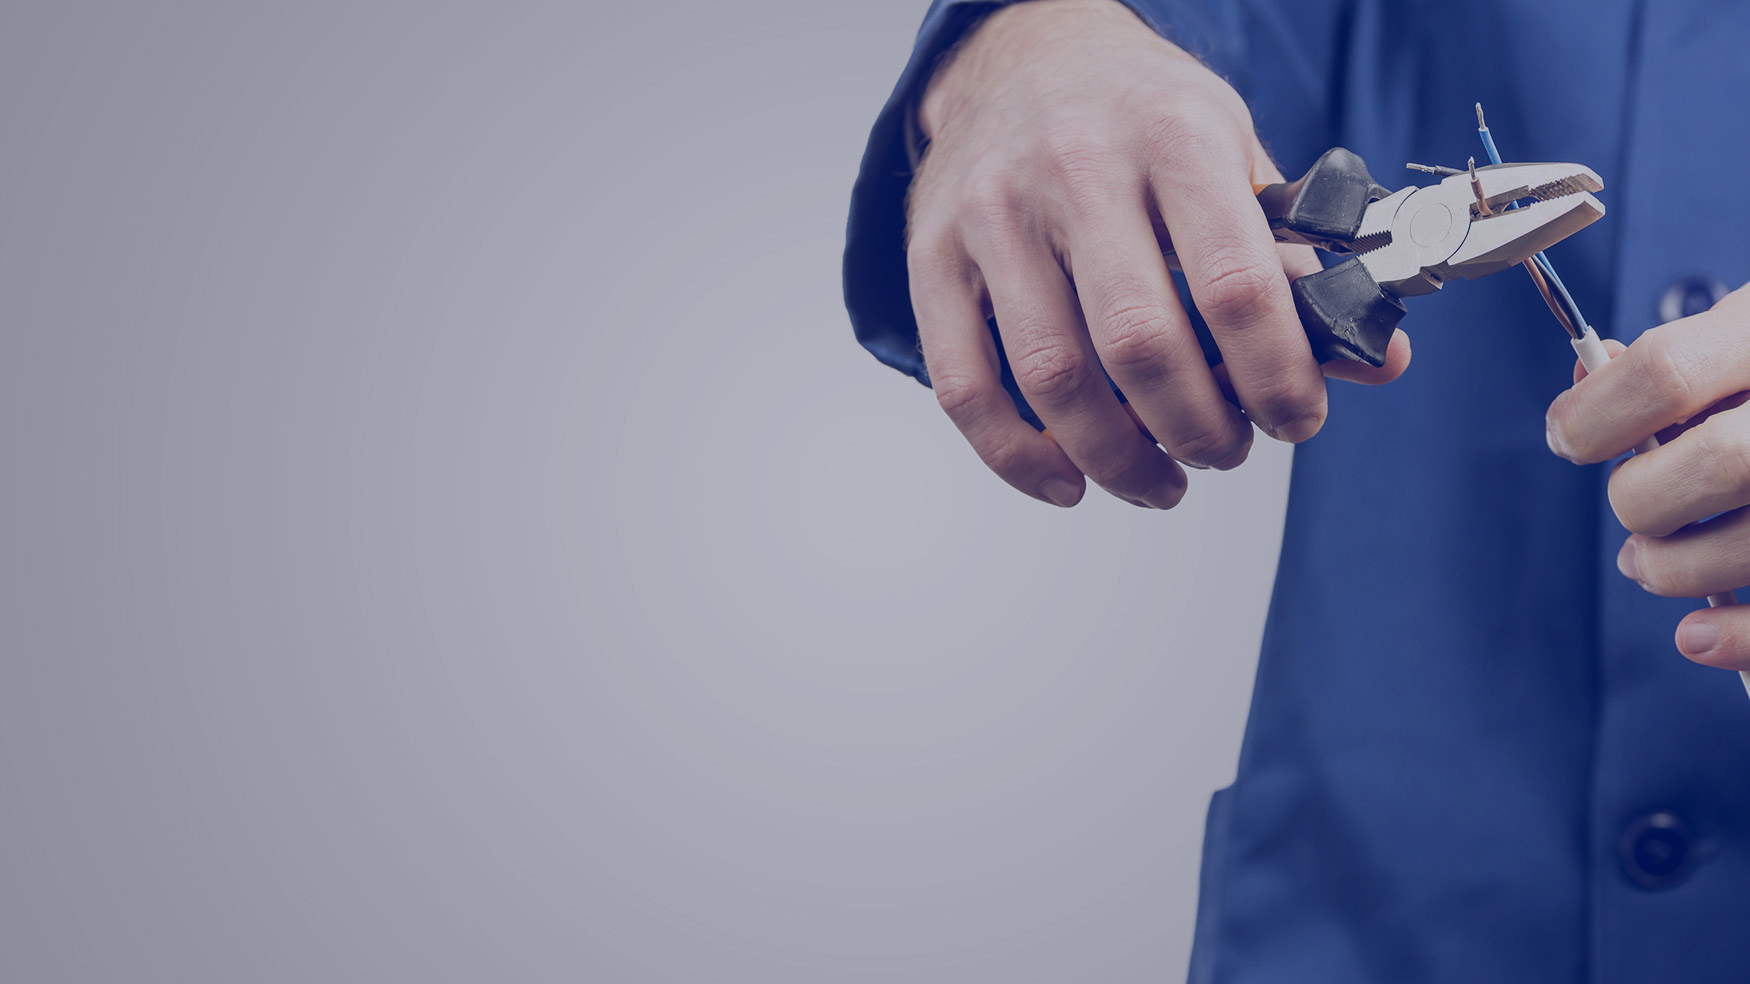 Workman or electrician repairing an electrical cable with a pair of pliers to restore supply to the house, close up view of his hands in blue overalls on grey with copyspace